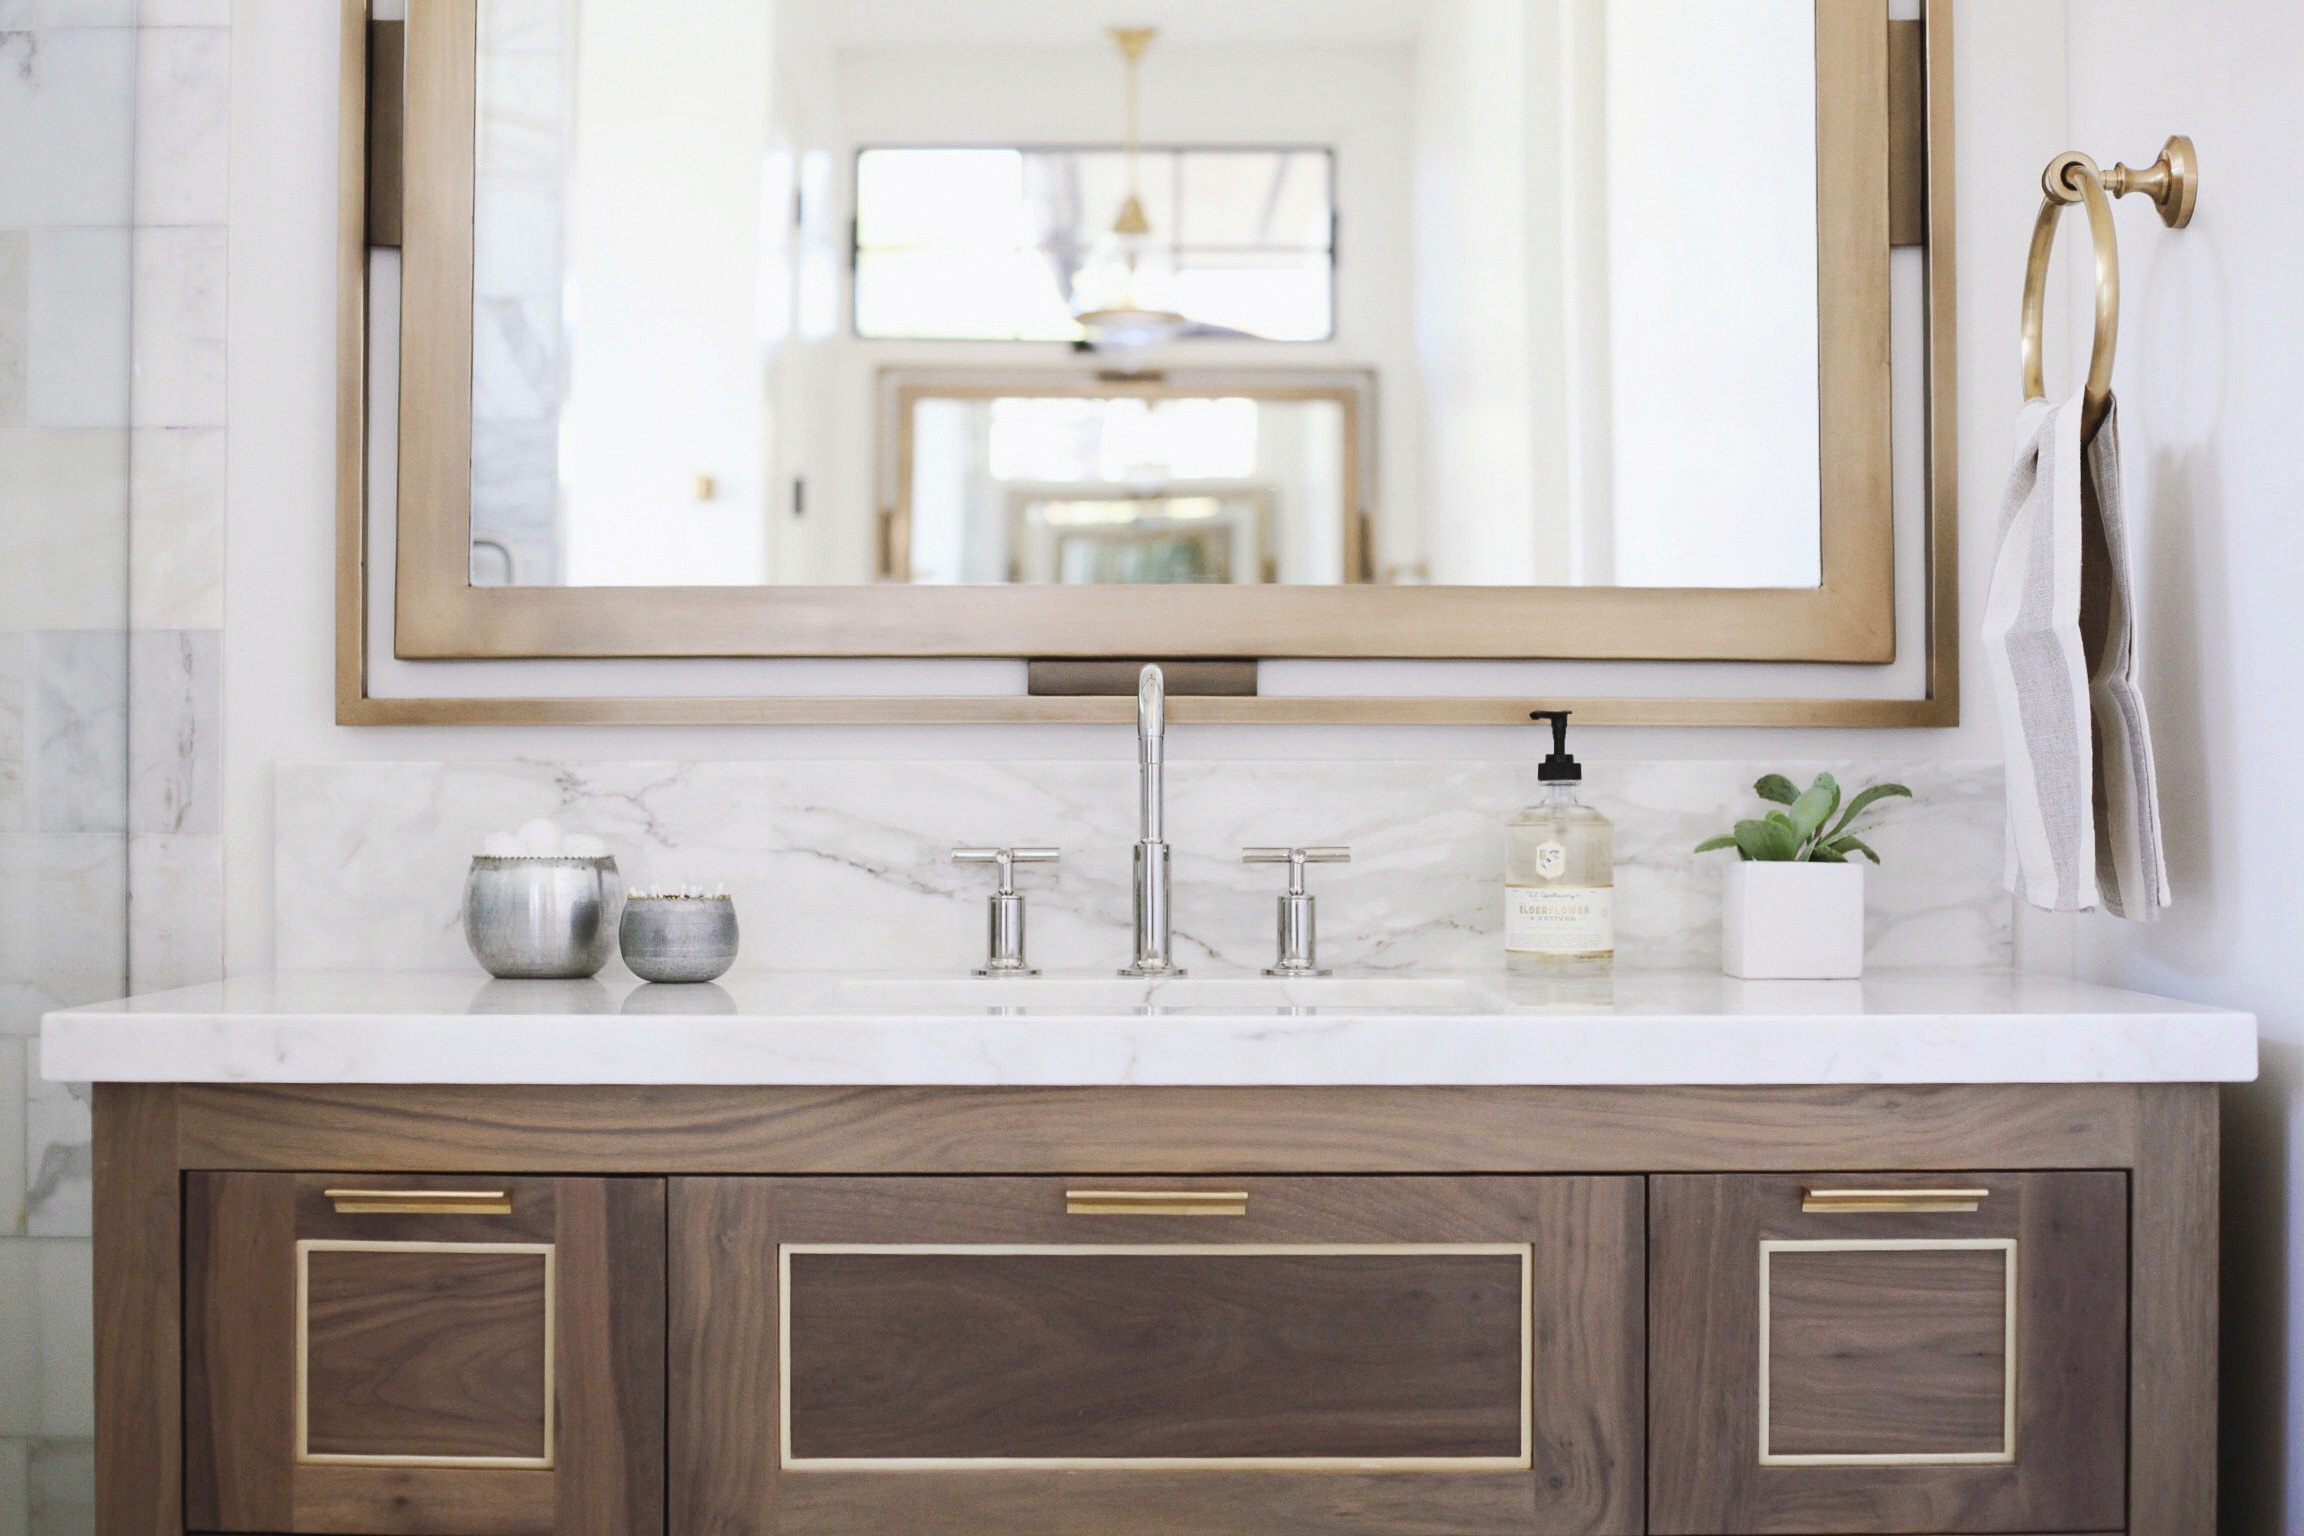 - The custom walnut and brass vanity in the master bath will forever be one of my favorite designs. The mixture of the classic, rich materials of brass and walnut complimented each other so well and Peterson Woodworks executed our designs beautifully.